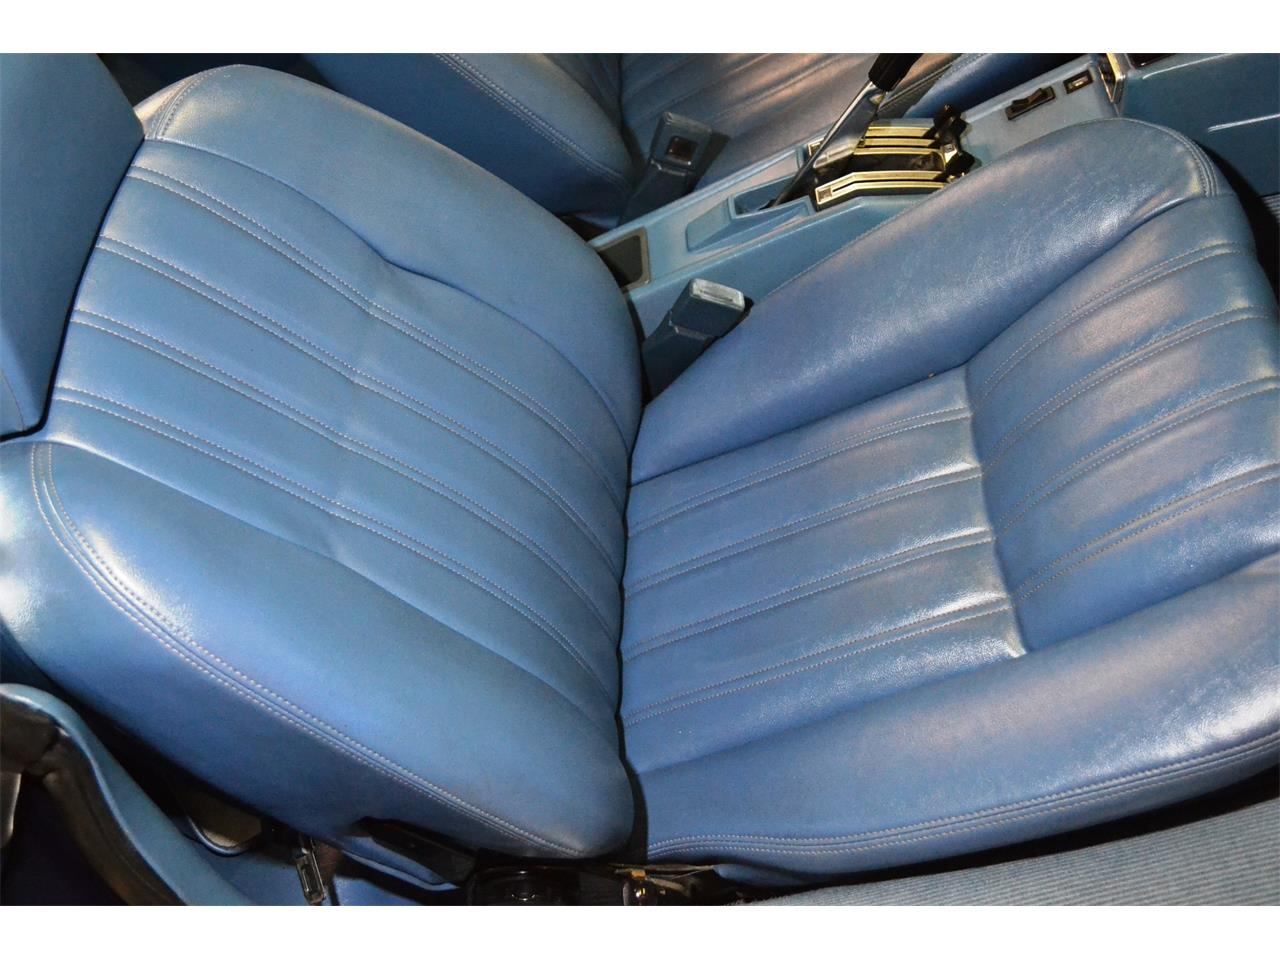 1981 Fiat Spider for sale in Barrington, IL – photo 32